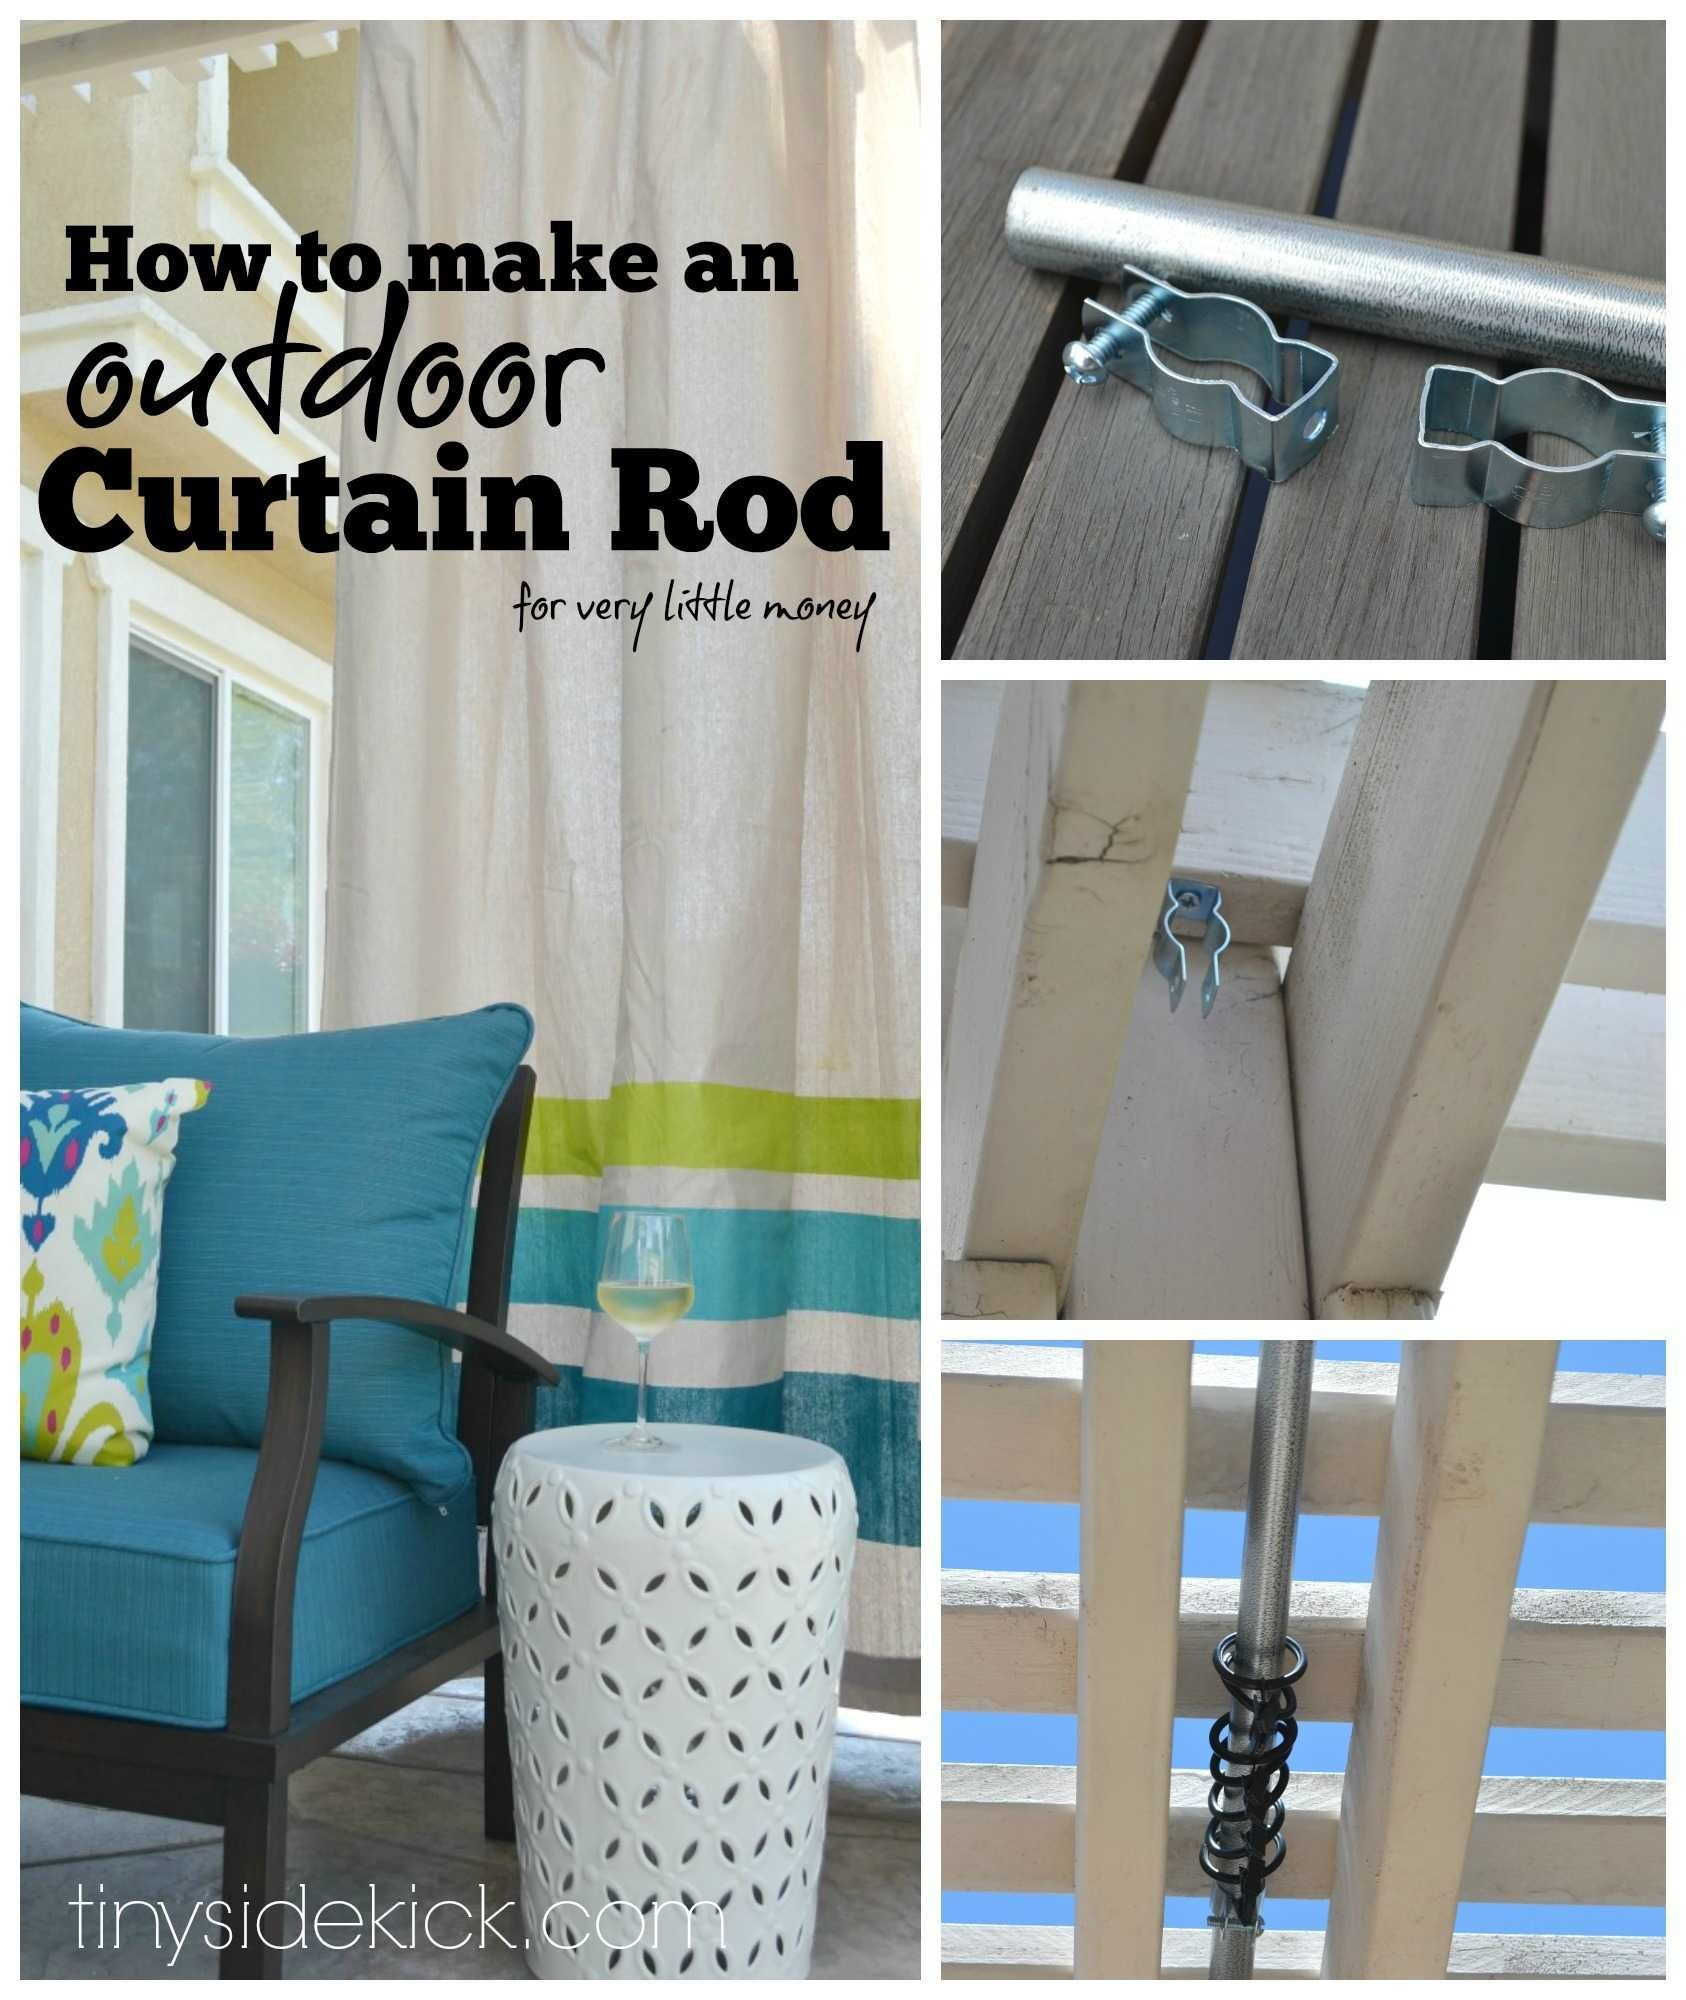 How To Make An Outdoor Curtain Rod For Very Little Money Outdoor Curtain Rods Outdoor Curtains Diy Curtains